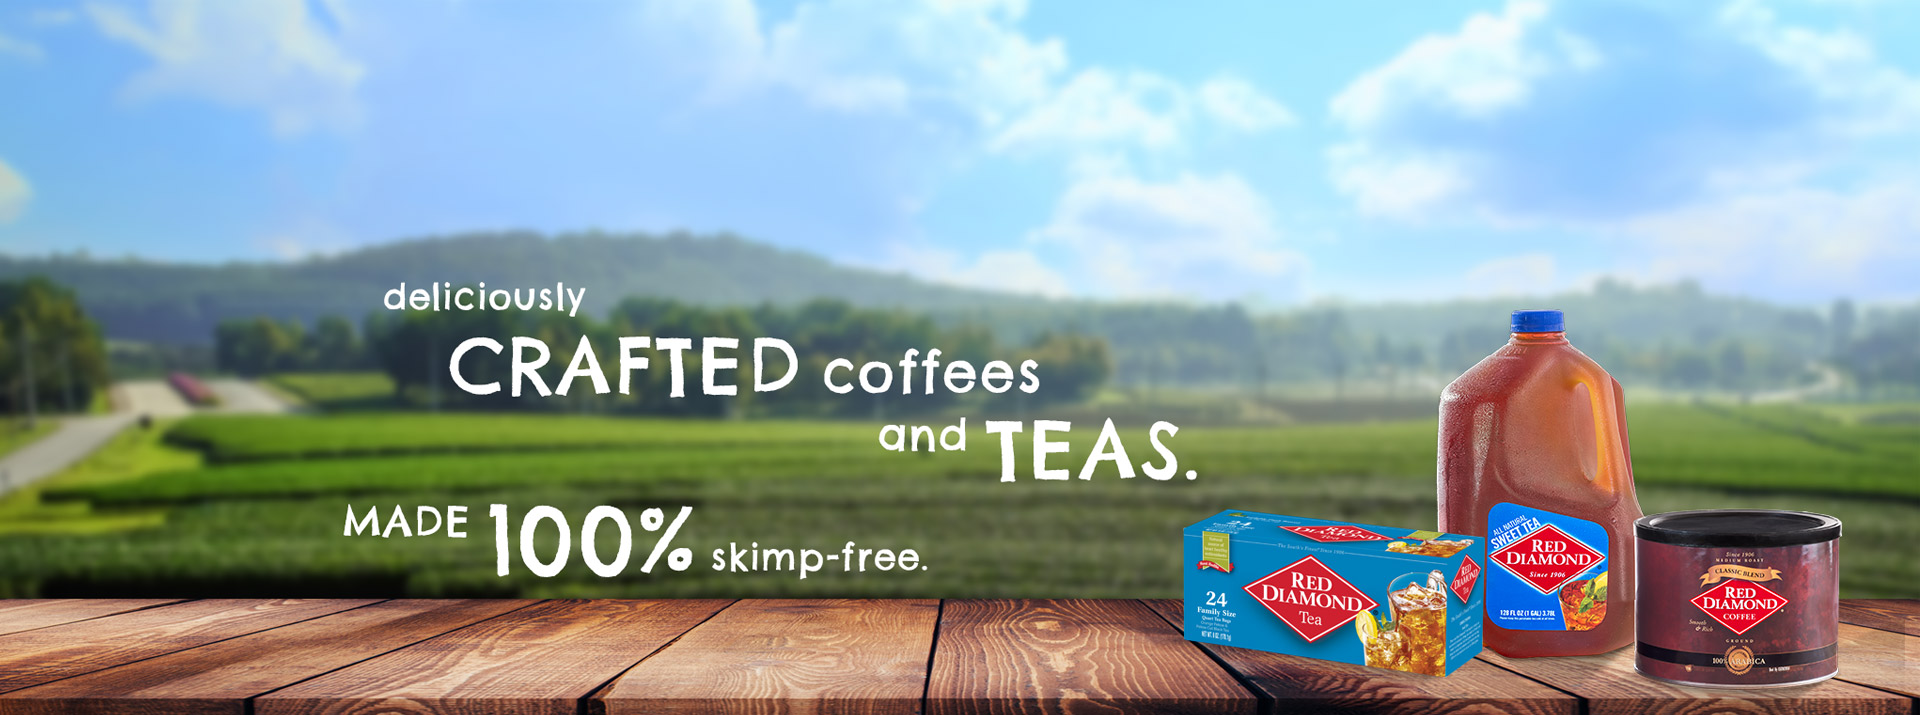 Perfectly Crafted Coffee and Teas